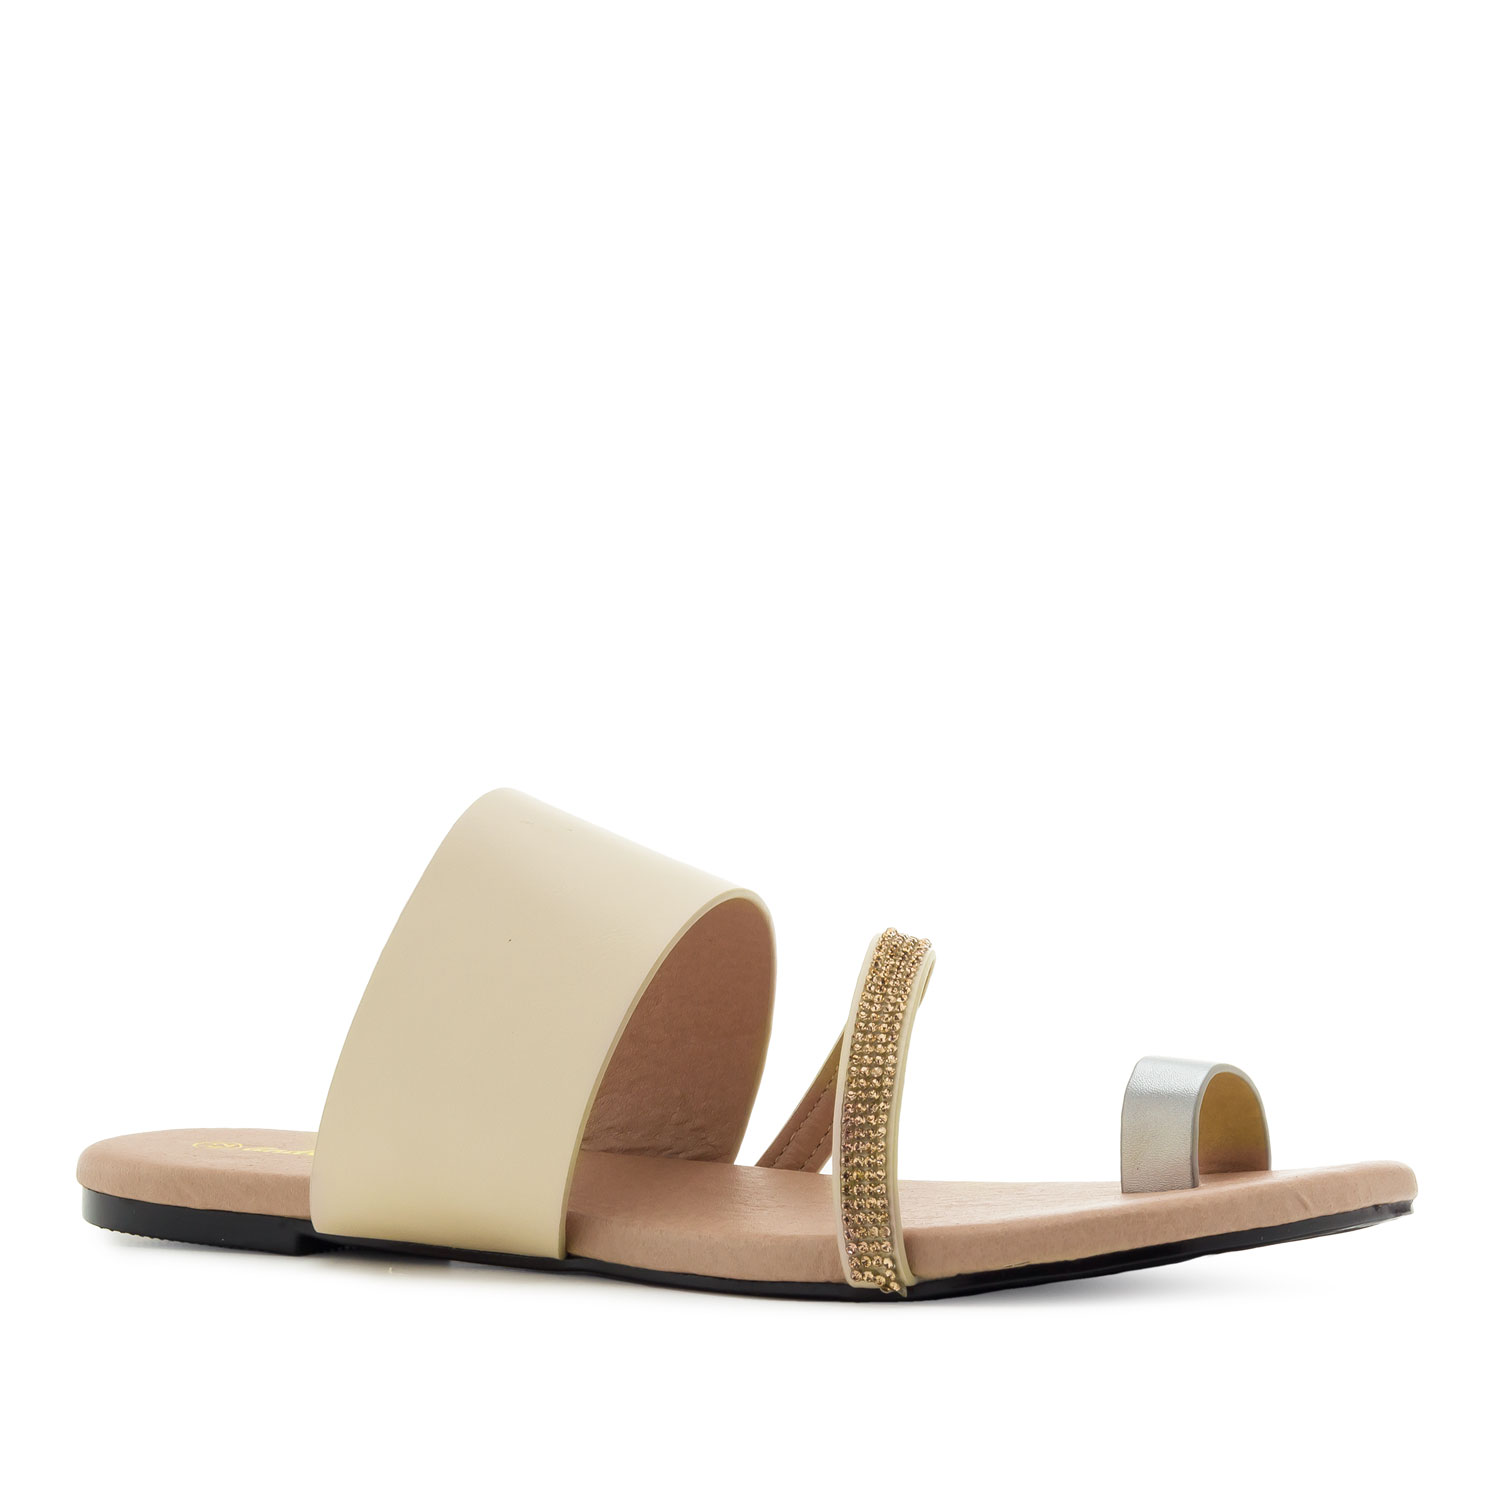 Toe Flat Sandals in Cream faux Leather